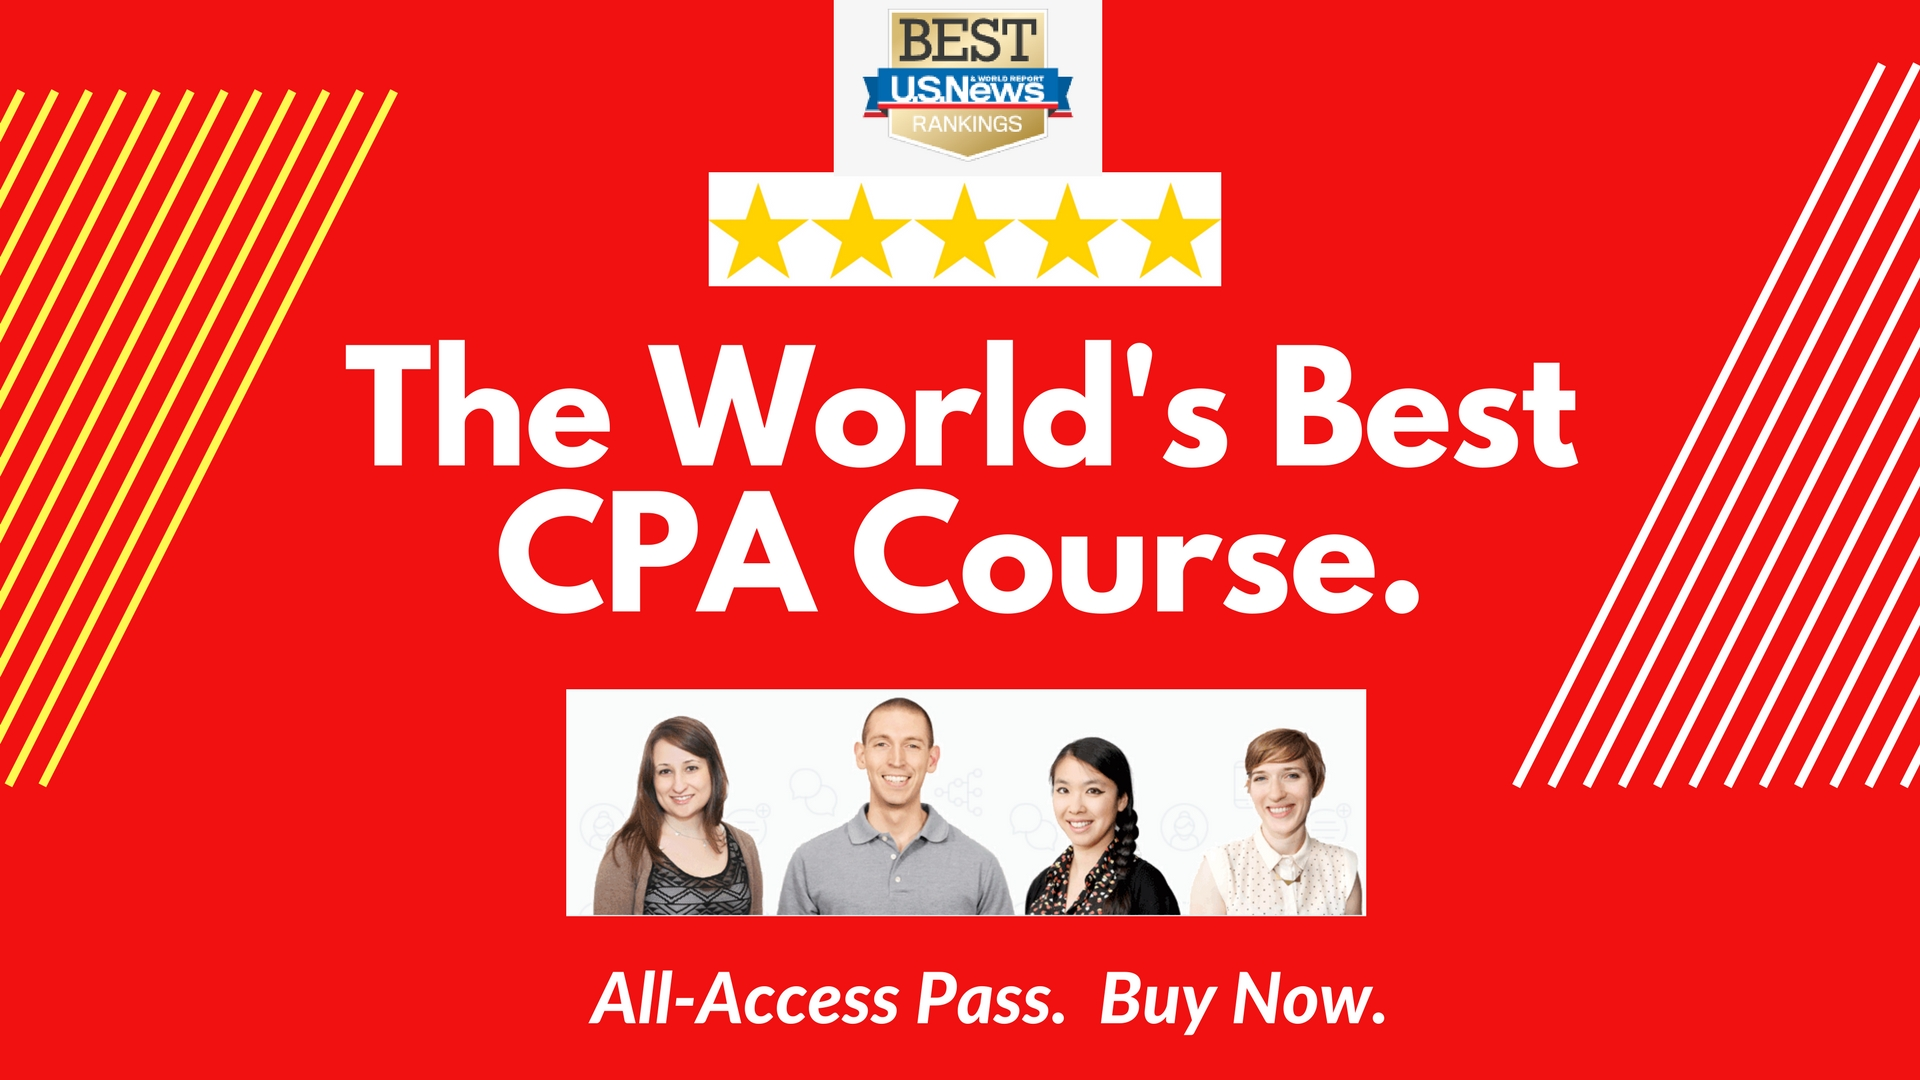 Best CPA Exam Prep Course. Ranked by U.S. News.